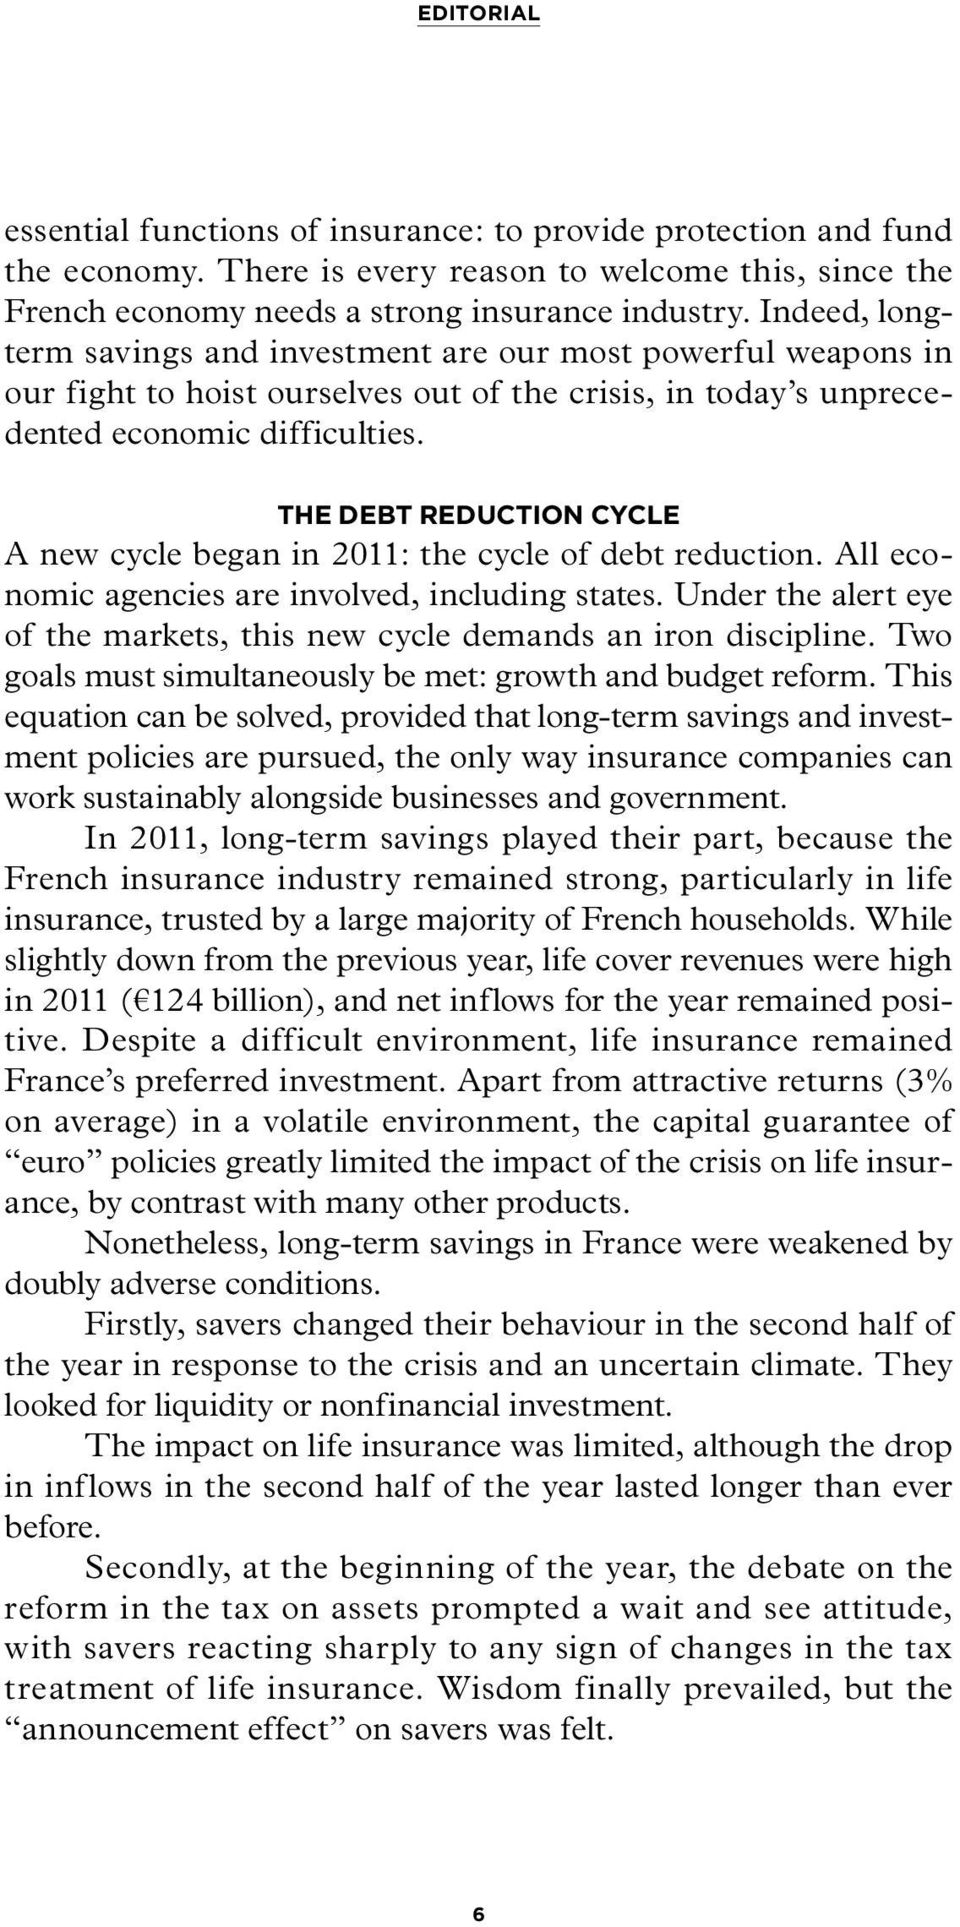 THE DEBT REDUCTION CYCLE A new cycle began in 2011: the cycle of debt reduction. All economic agencies are involved, including states.